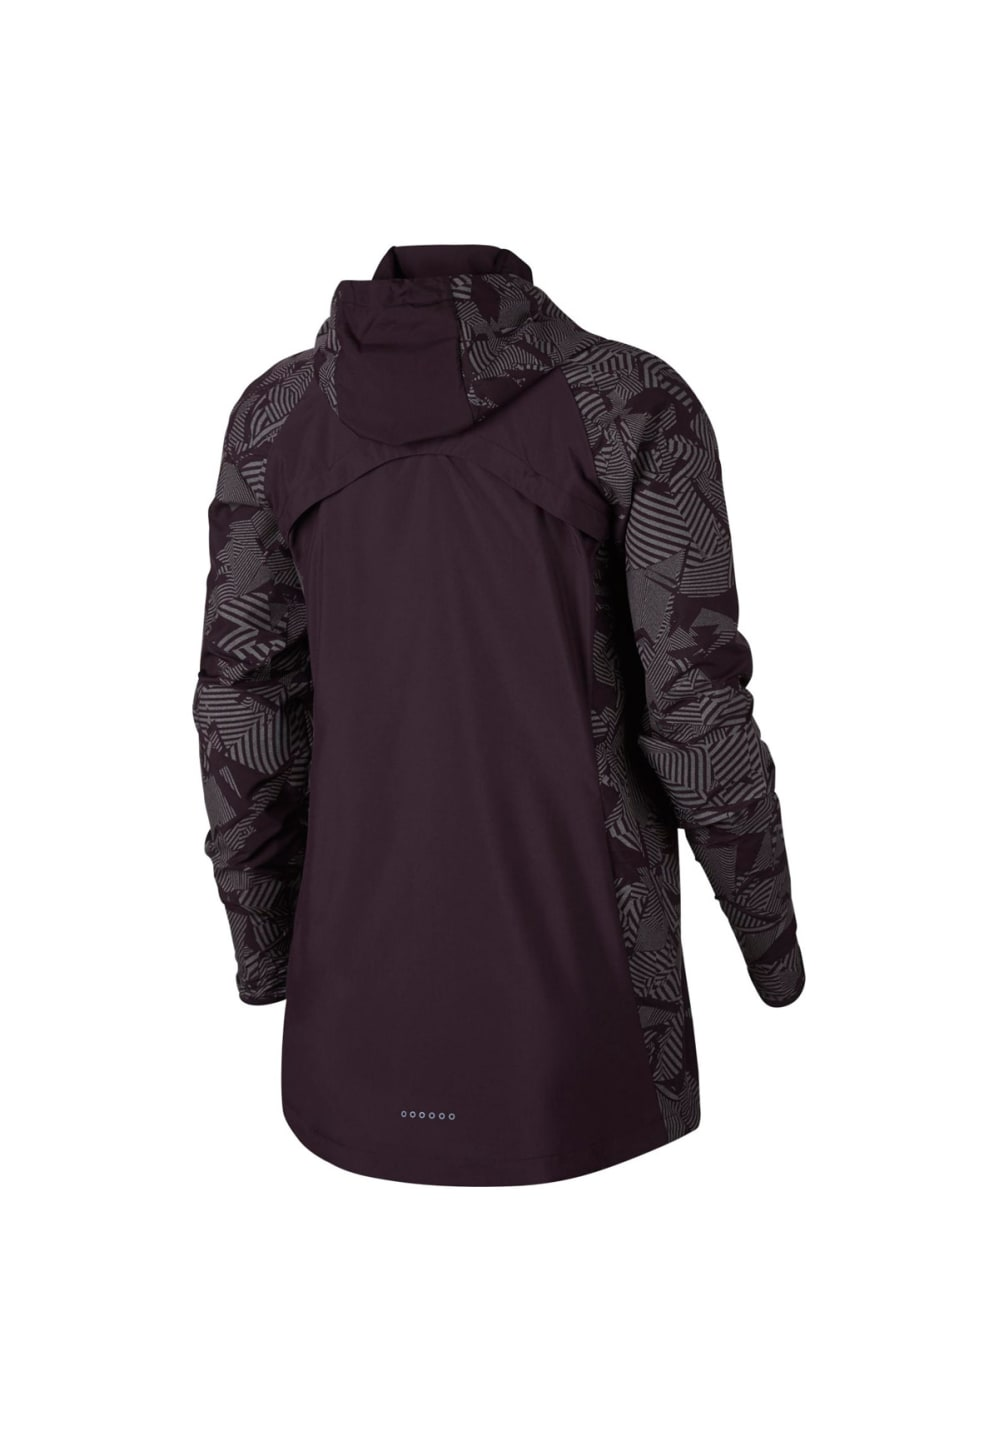 de35a64eda5b ... Nike Essential Flash Running Jacket - Running jackets for Women - Brown.  Back to Overview. 1  2. Previous